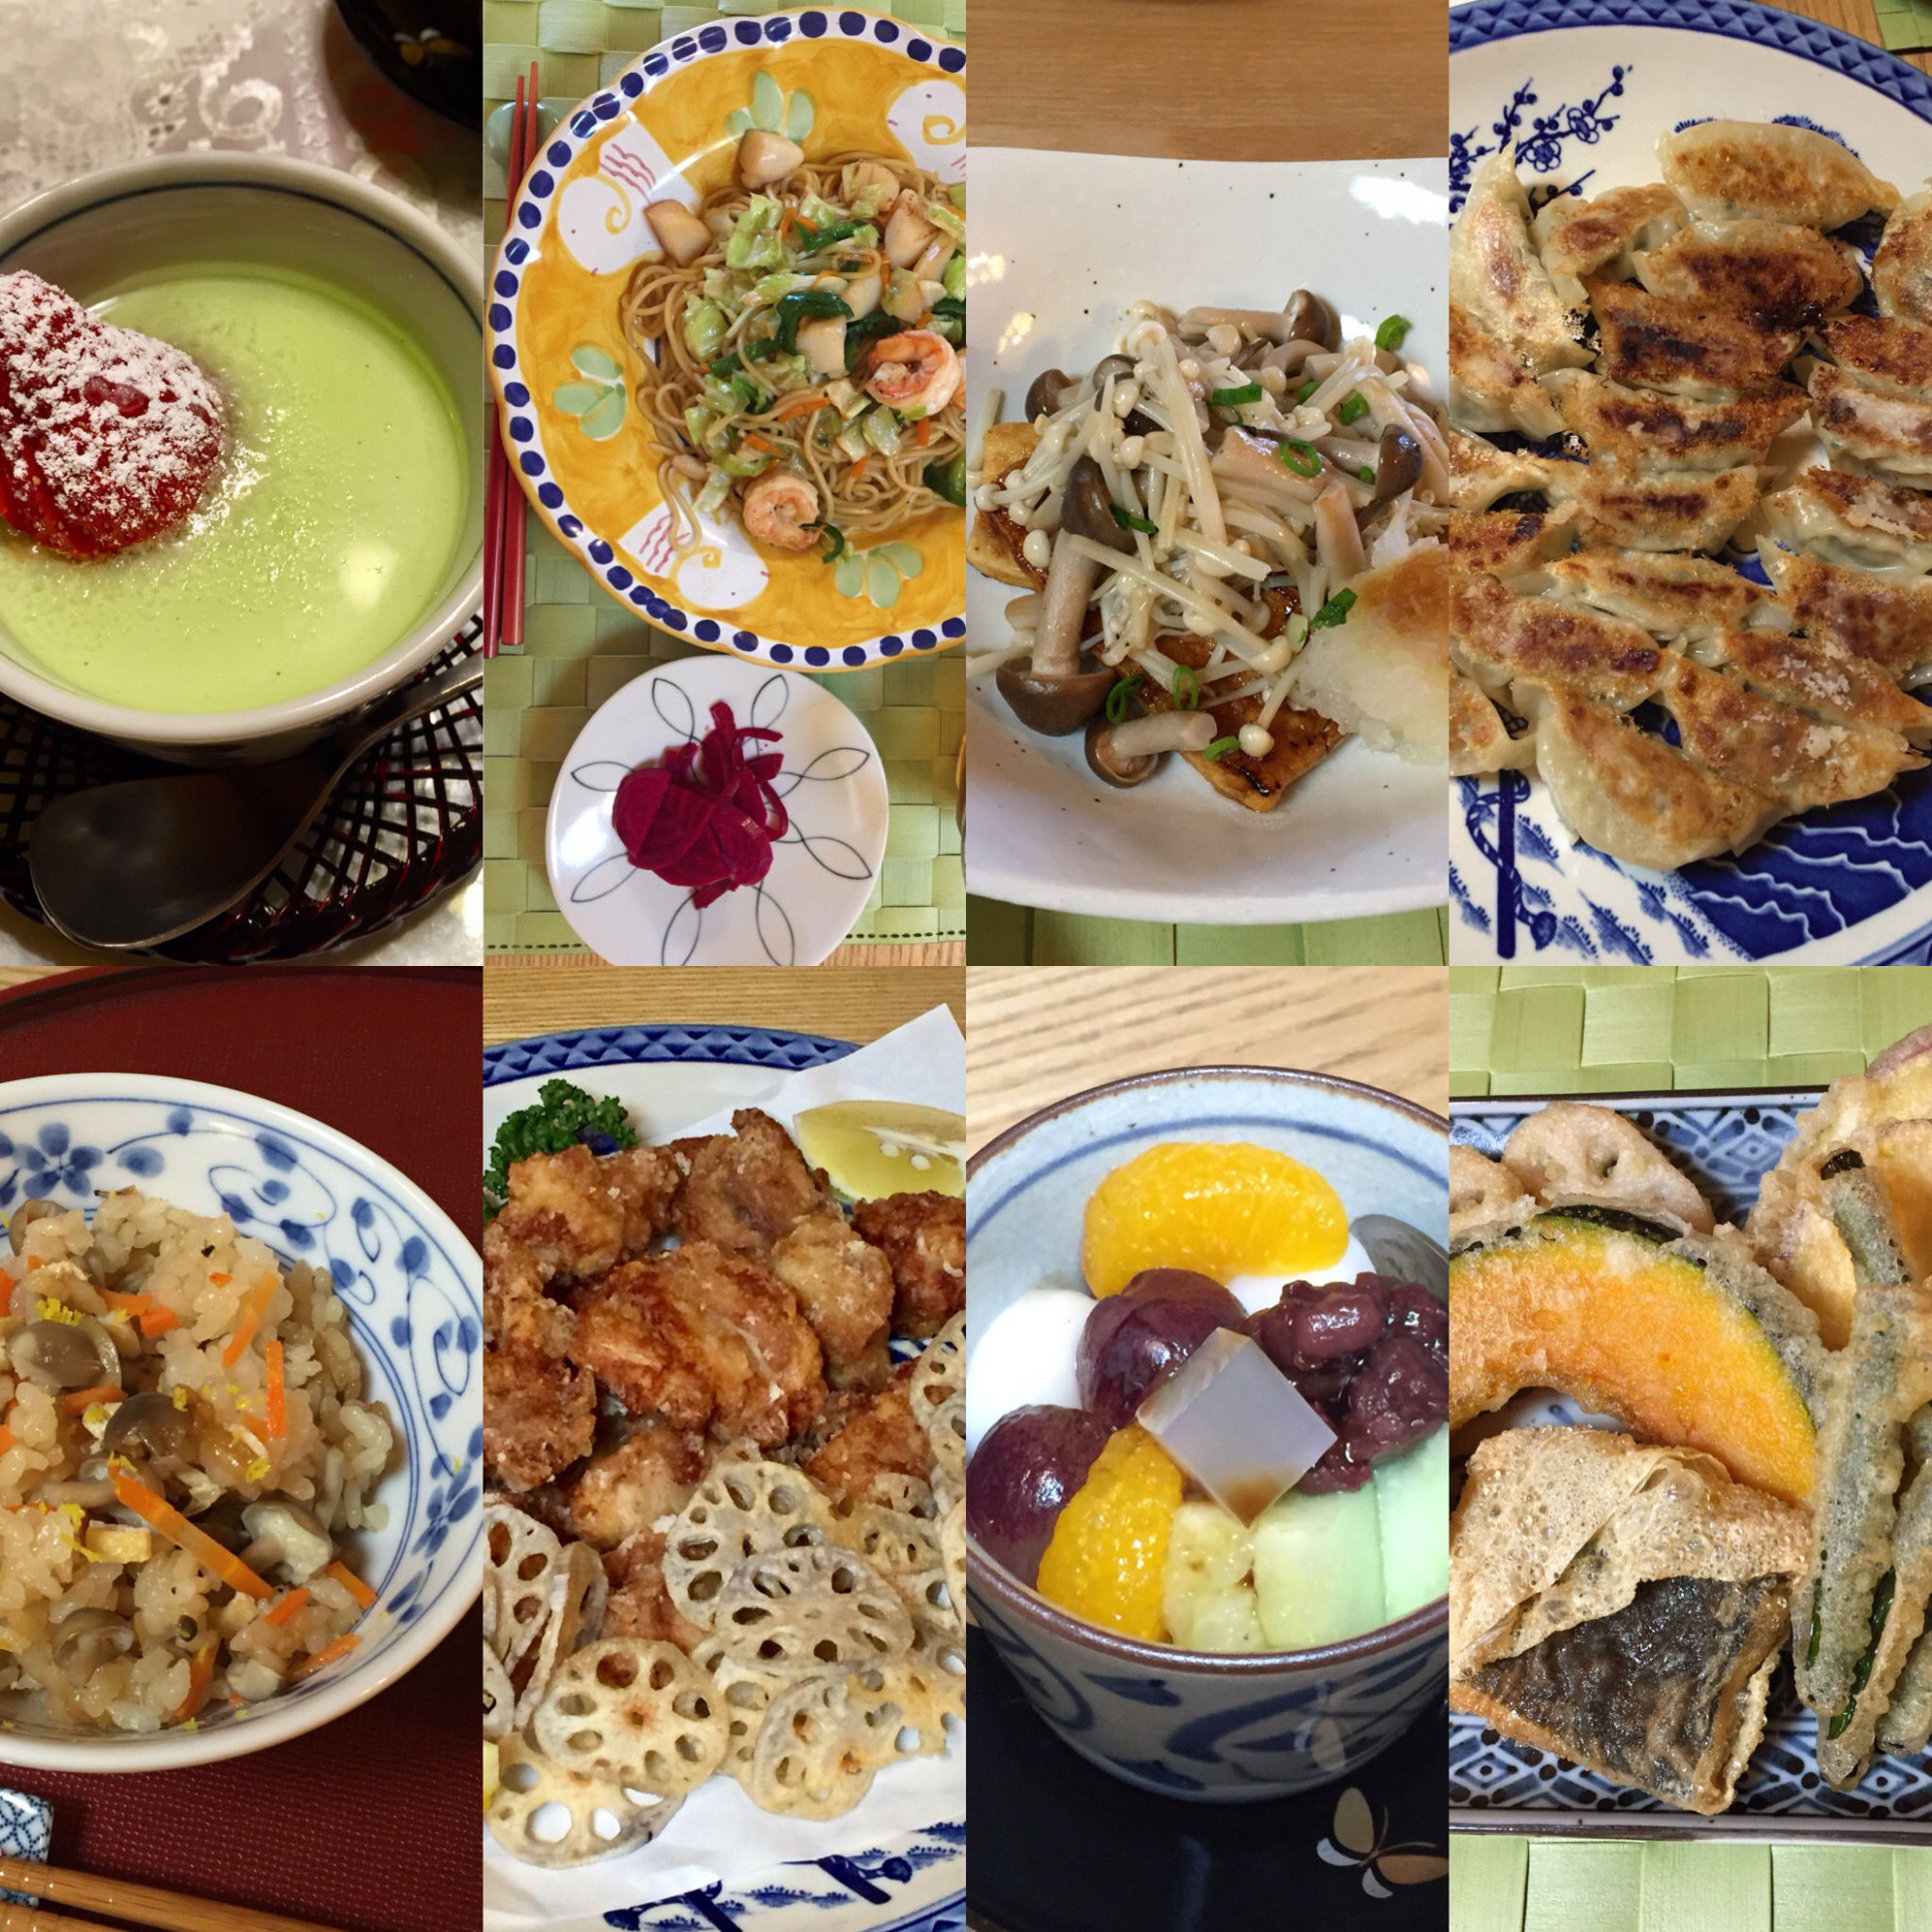 Food Of The Seasons - Japanese Home Meal Cooking  : Japanese Home Meal  Cooking - Book Online - Cookly - Healthy Japanese Recipes